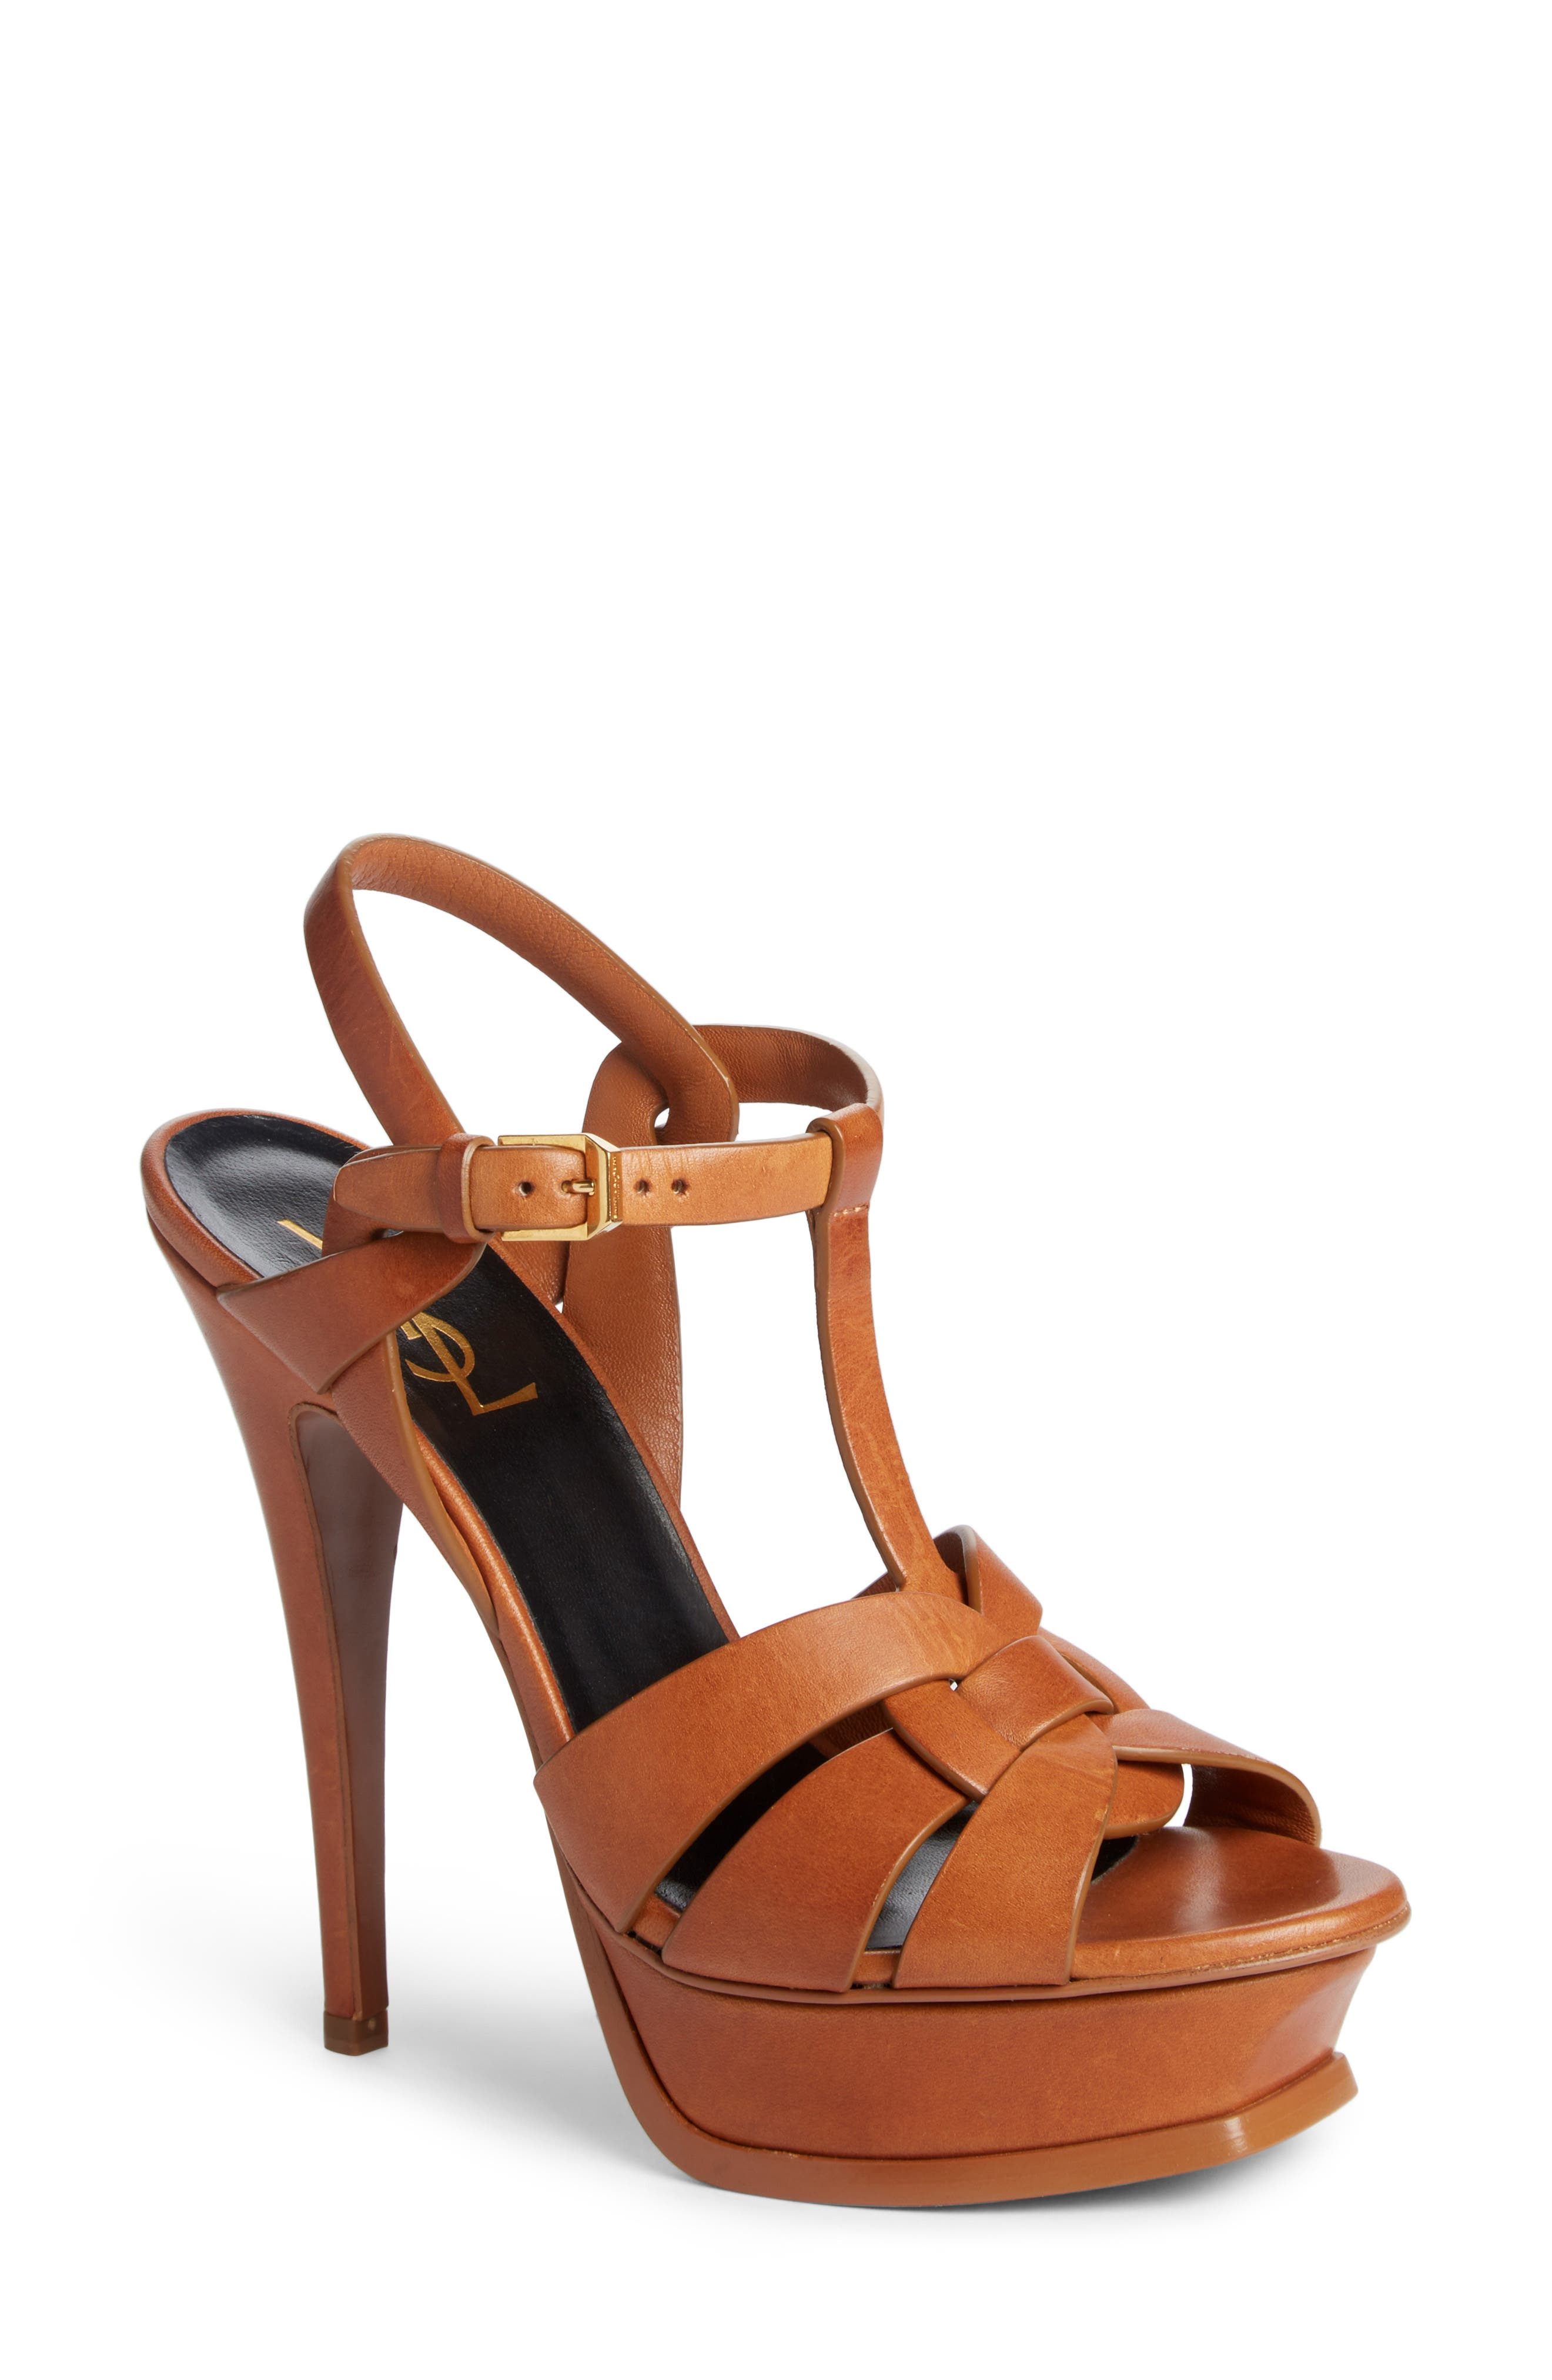 Alternate Image 1 Selected - Saint Laurent 'Tribute' Sandal (Women)